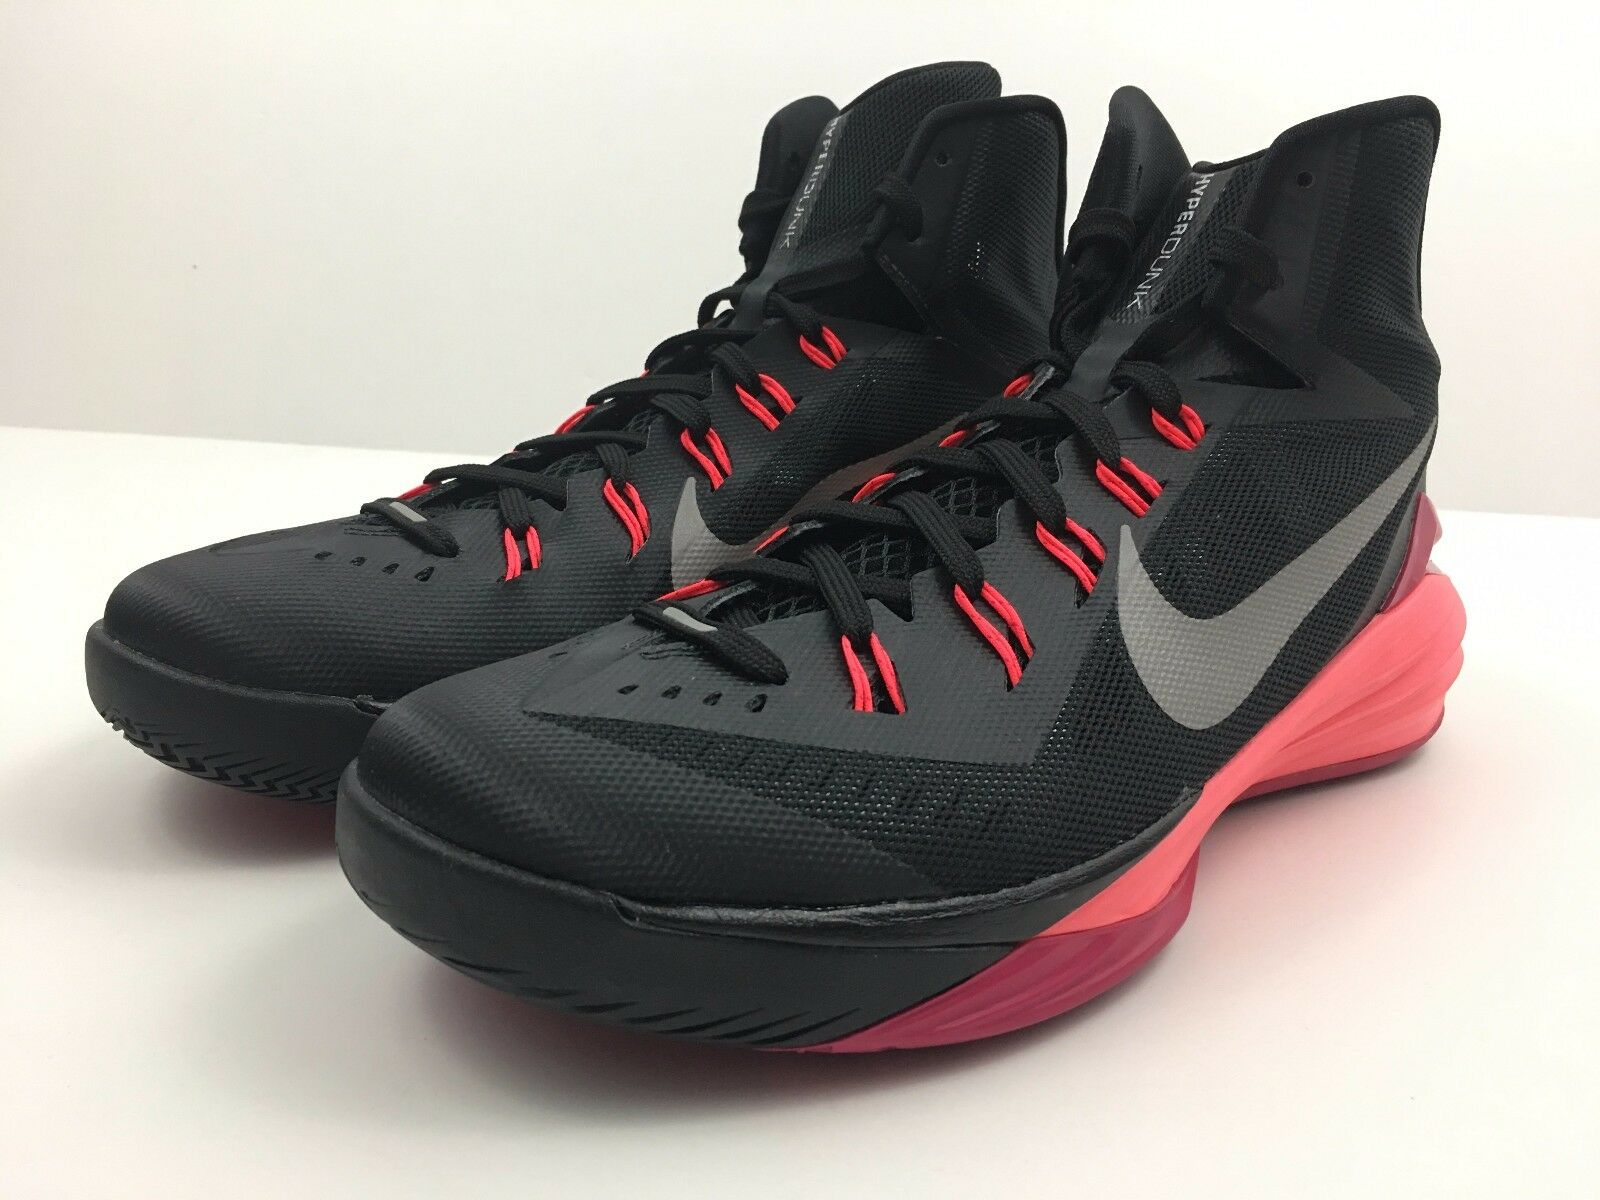 new style a6682 0fe7e ... best price new zealand nike punch hyperdunk 2014 black 653640 006 punch  nike basketball shoes mens